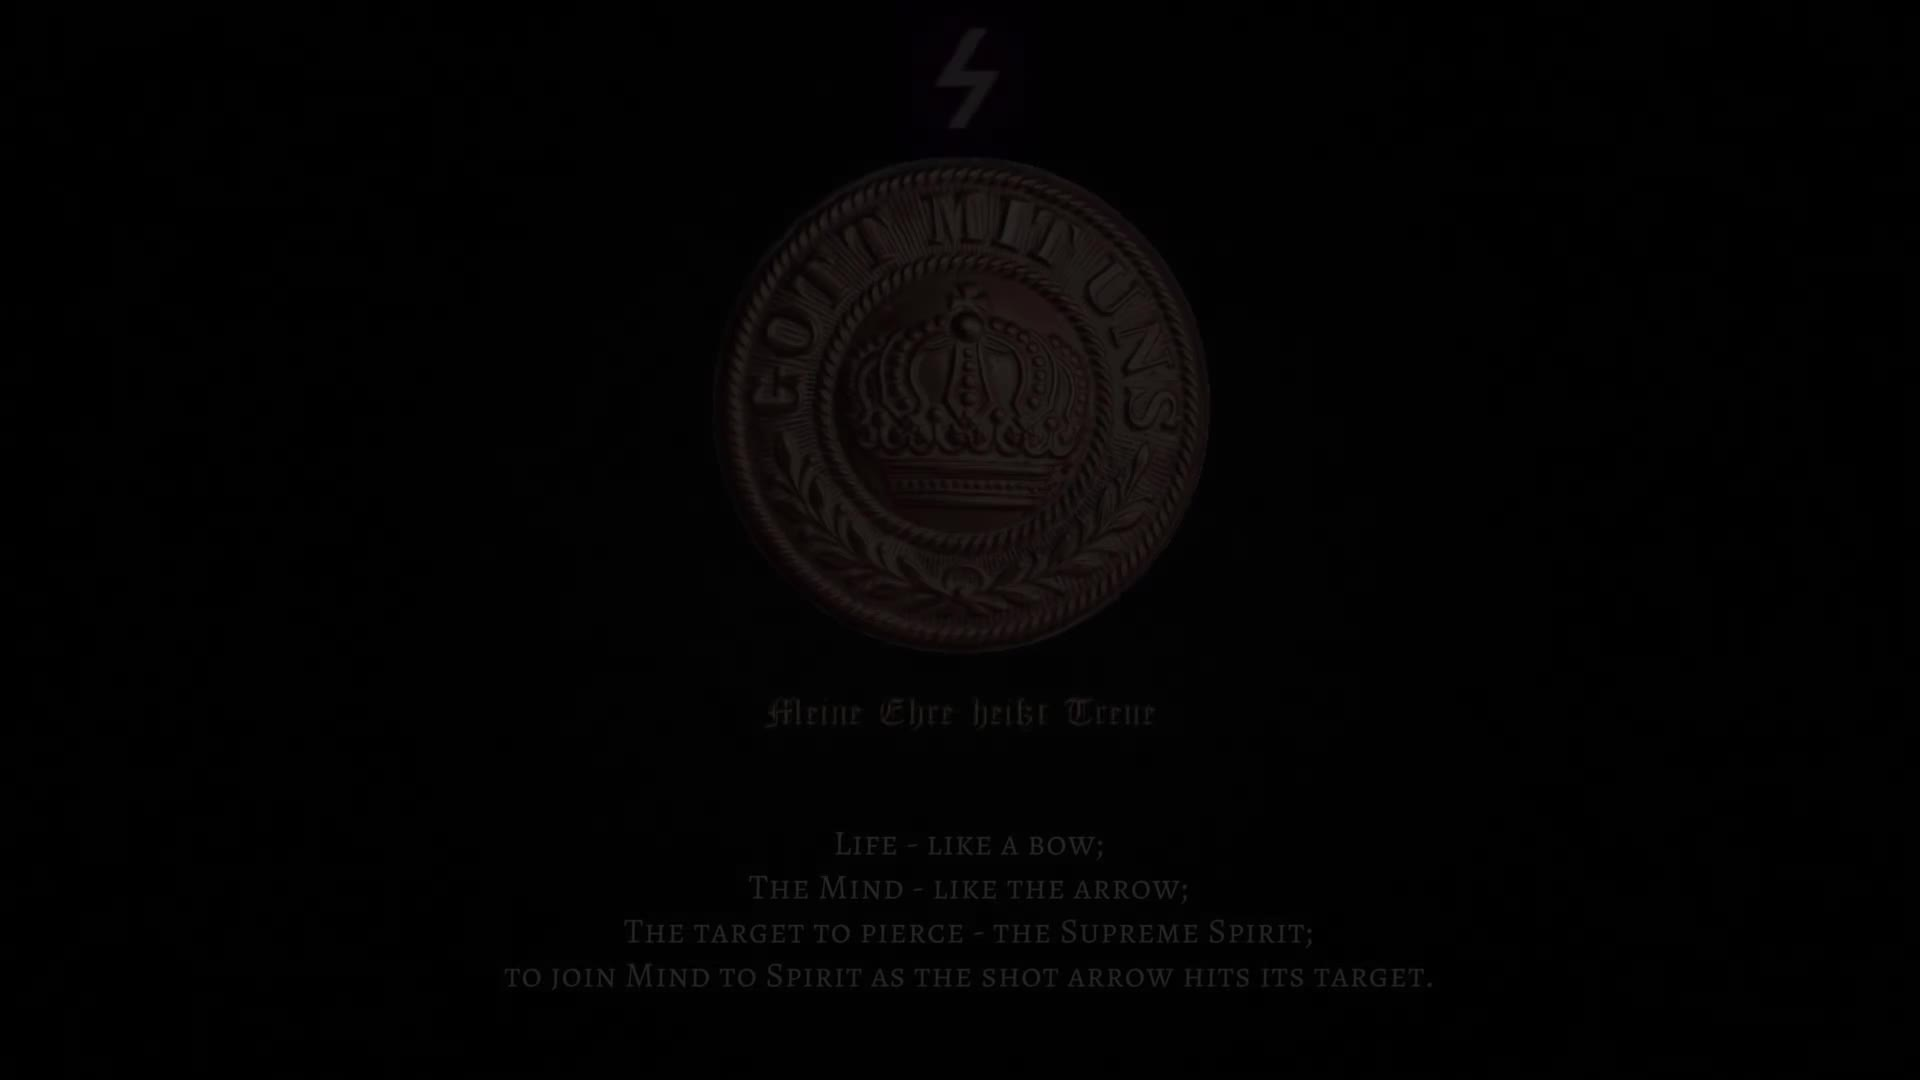 Our Subverted History, Part 5.1 - The Oera Linda Book